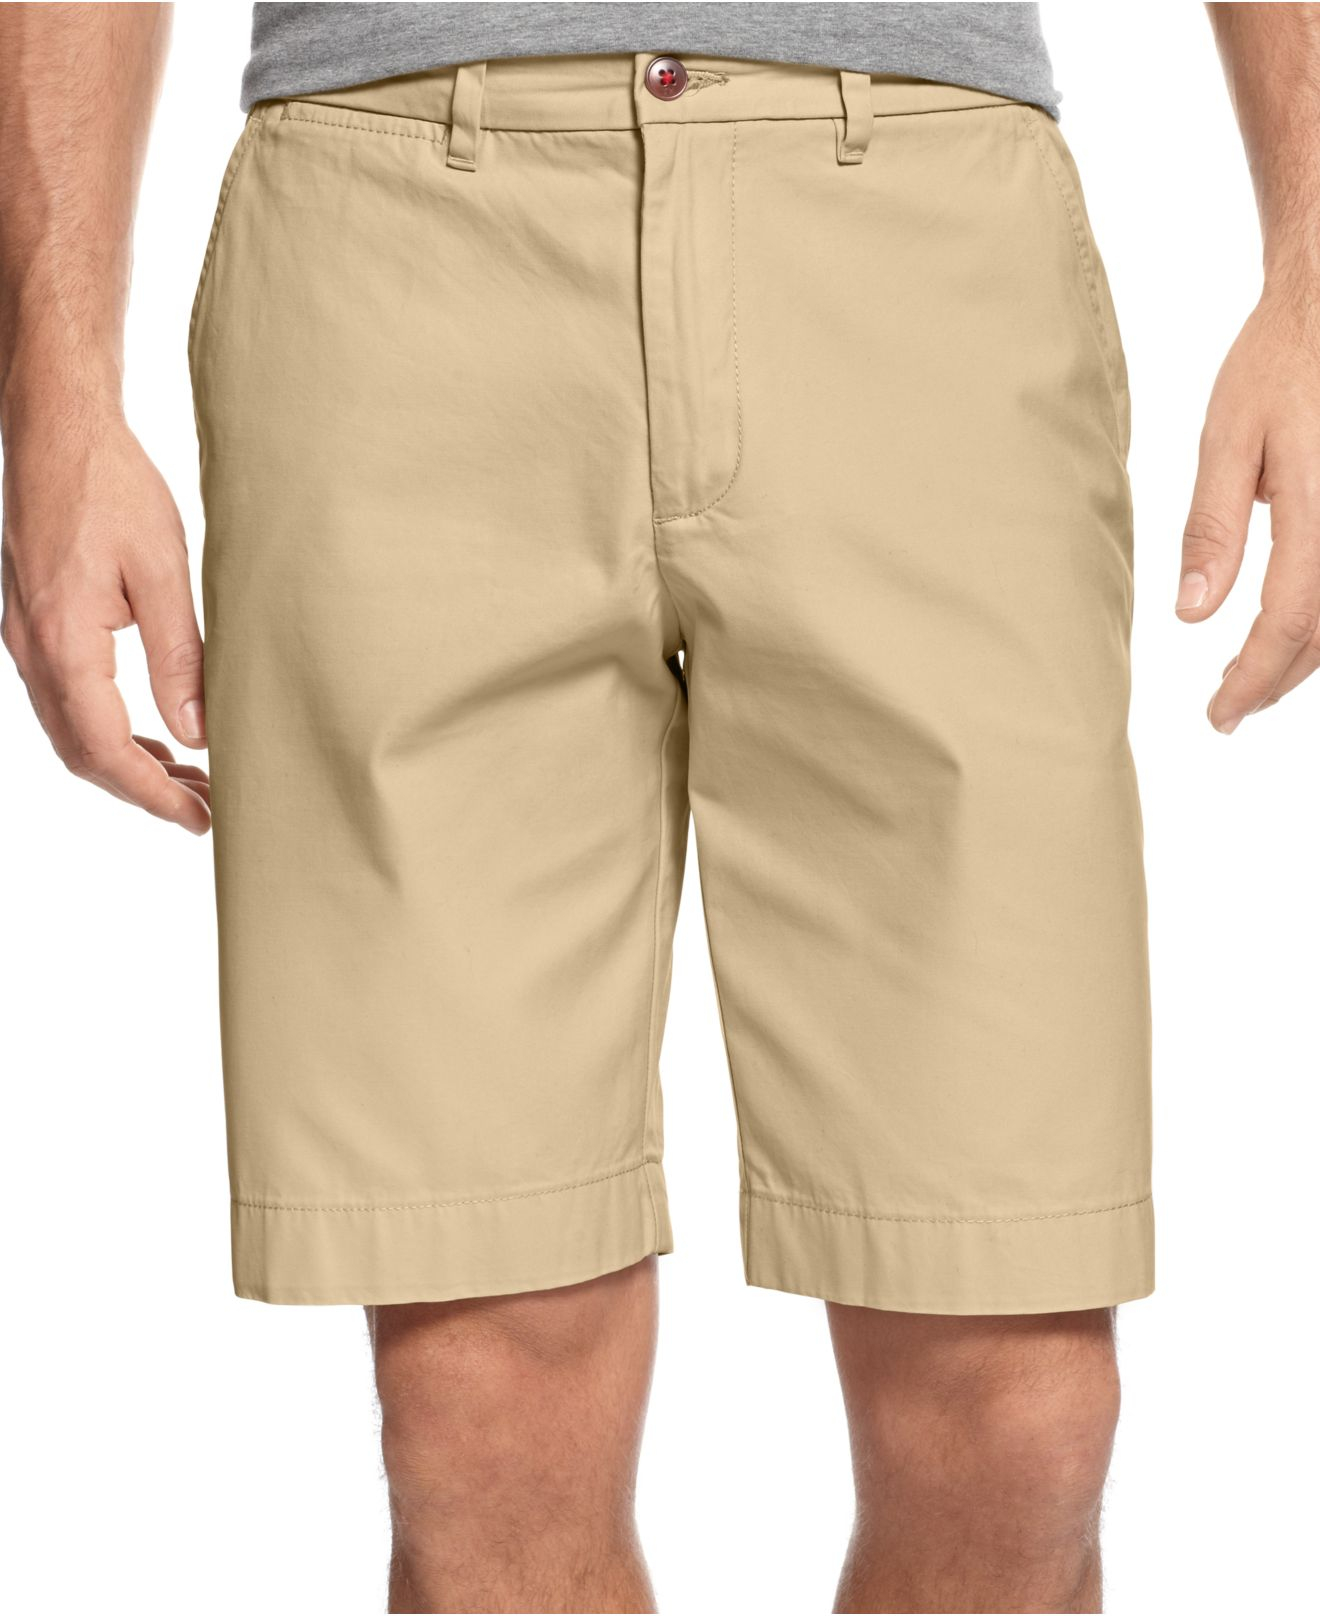 Chino shorts are the perfect option for an active dude who likes to look good, but wear some shorts that can handle rough-and-tough living. Many skateboarders look to chino shorts when the weather warms up, as chino material is a tight twill knit that is much more resistant to scuffing.